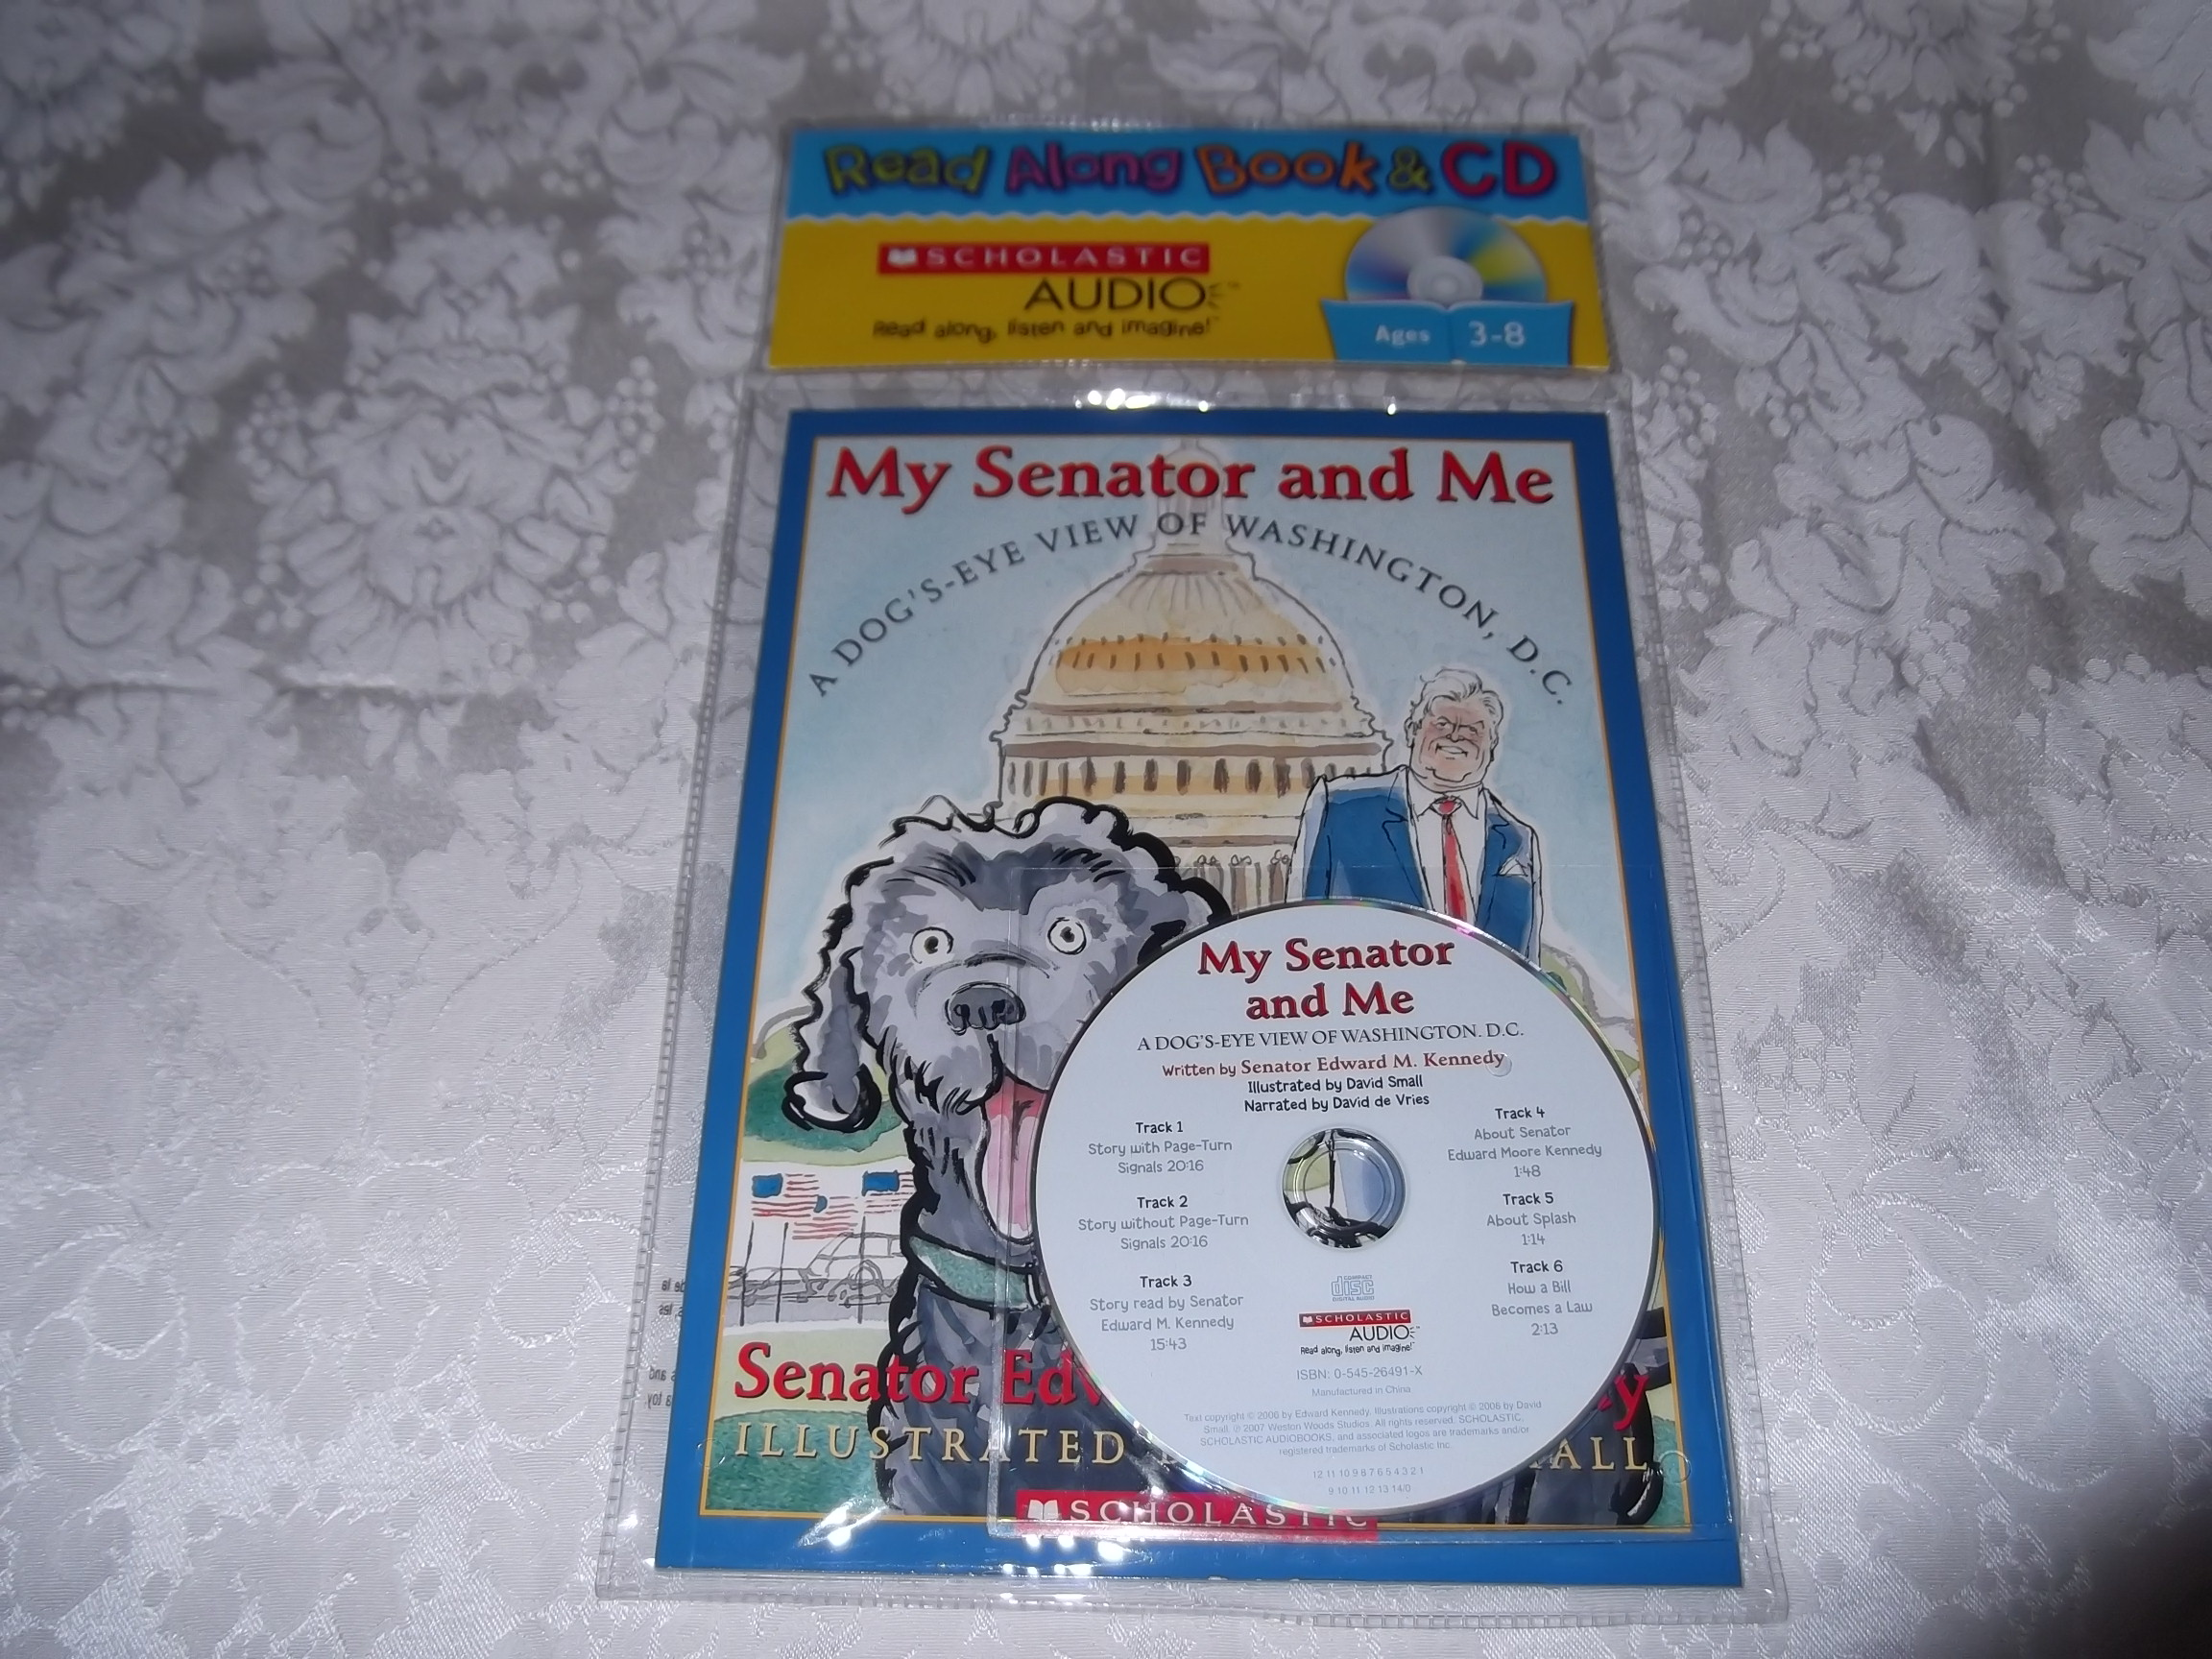 My Senator and Me A Dog's-Eye View of Washington, D.C. Kennedy Audio CD and SC